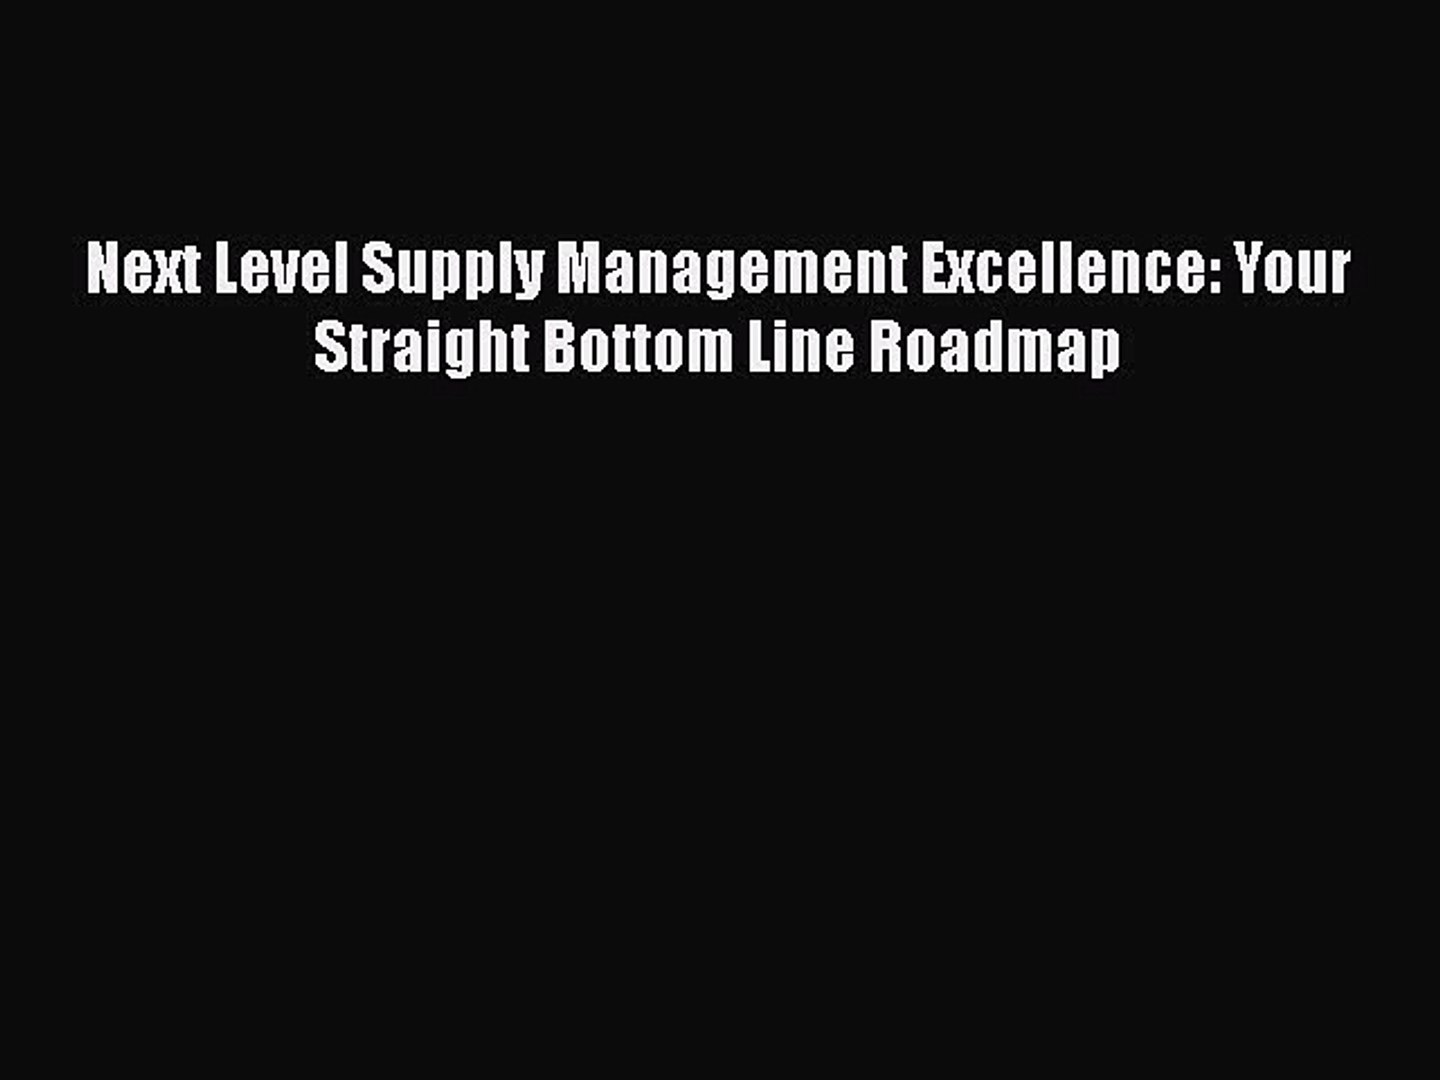 READbookNext Level Supply Management Excellence: Your Straight Bottom Line RoadmapBOOKONLINE